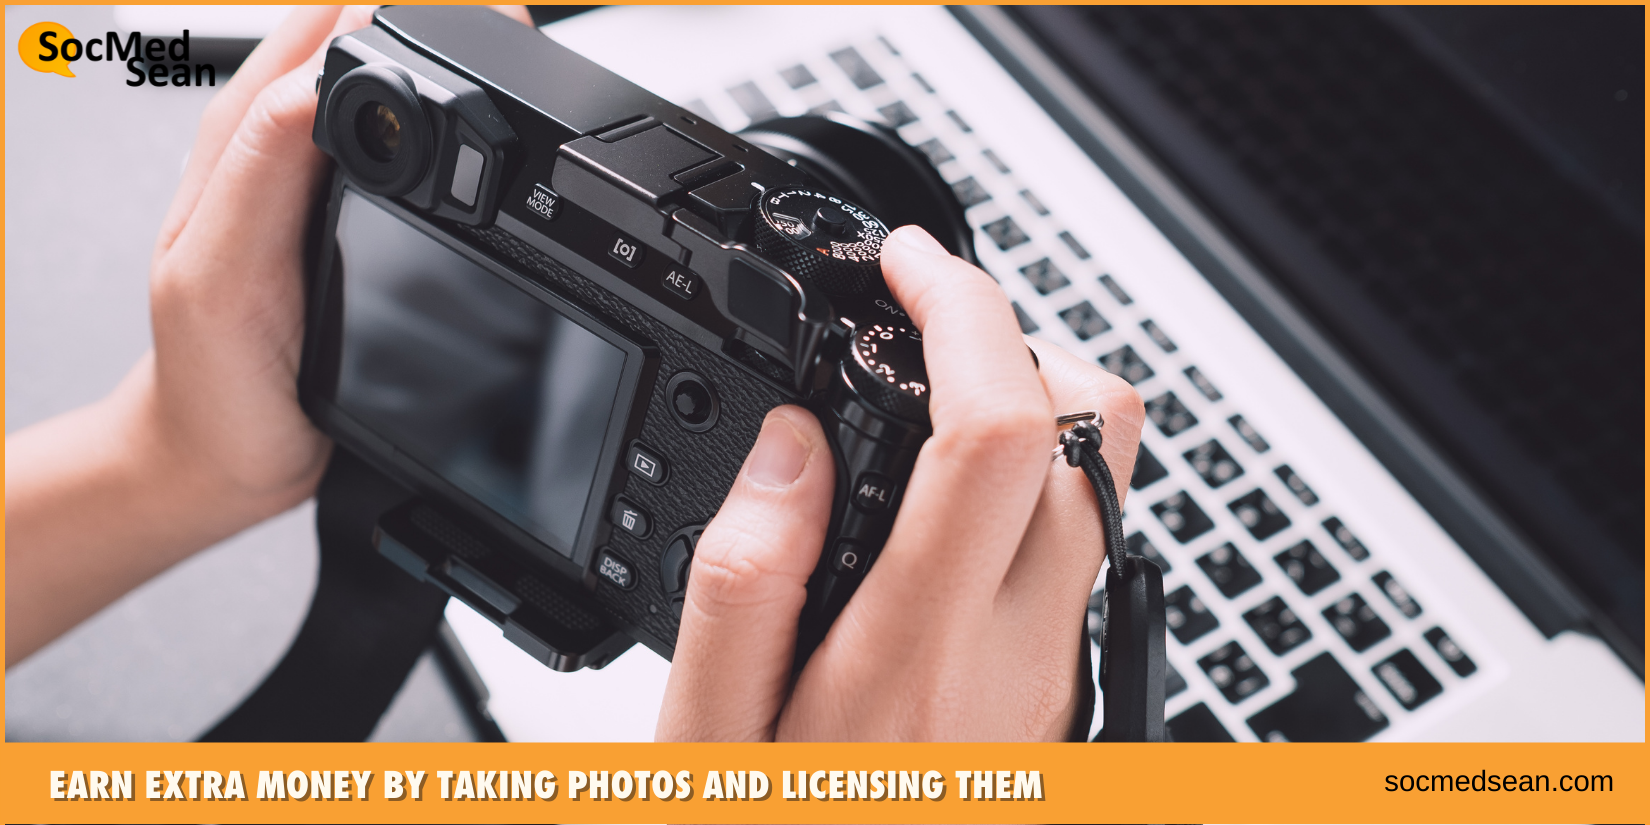 earn extra money by taking photos and licensing them